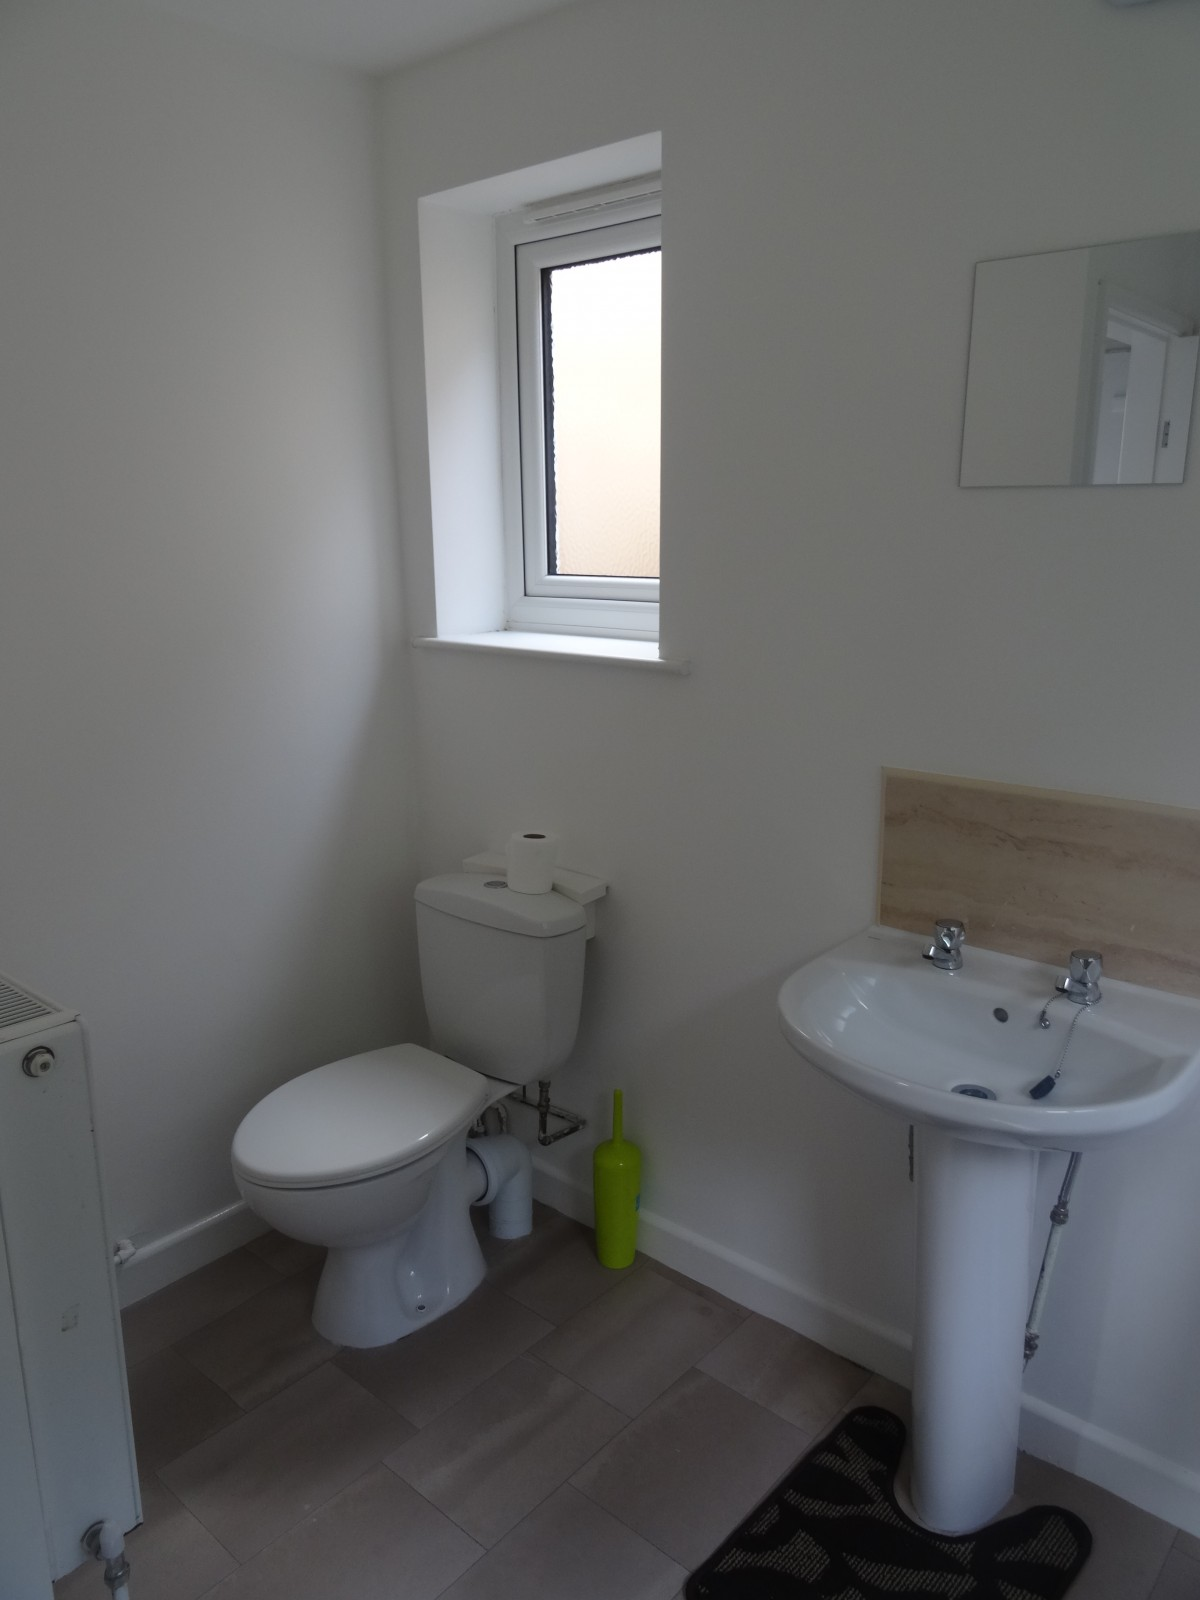 1 room in Tokyngton, London, HA9 6PG RoomsLocal image